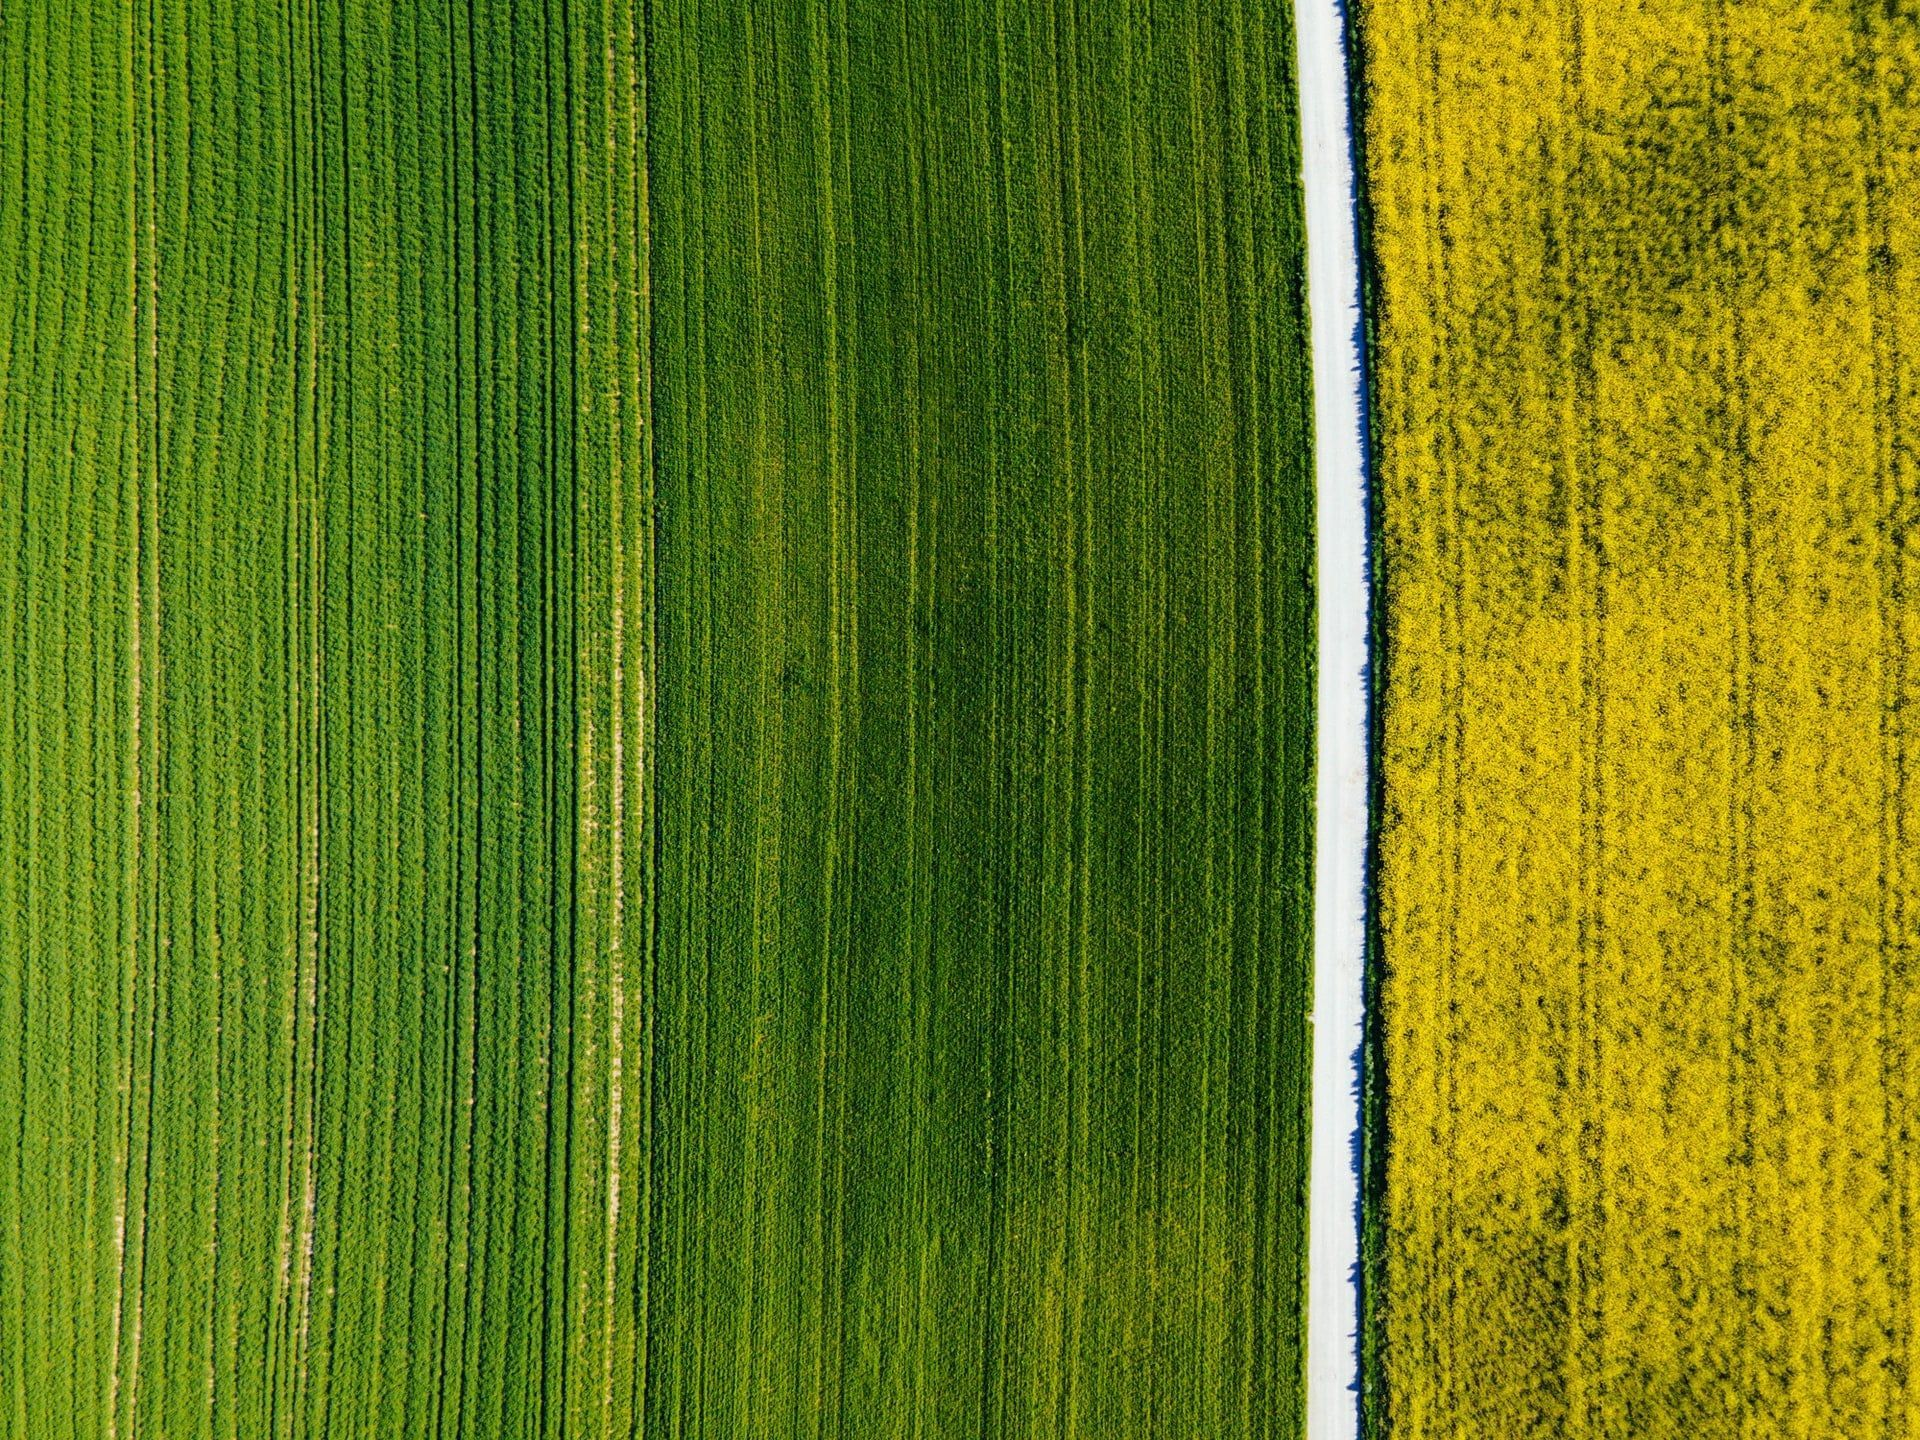 /all-you-need-is-ai-in-agriculture-5b2e376f feature image